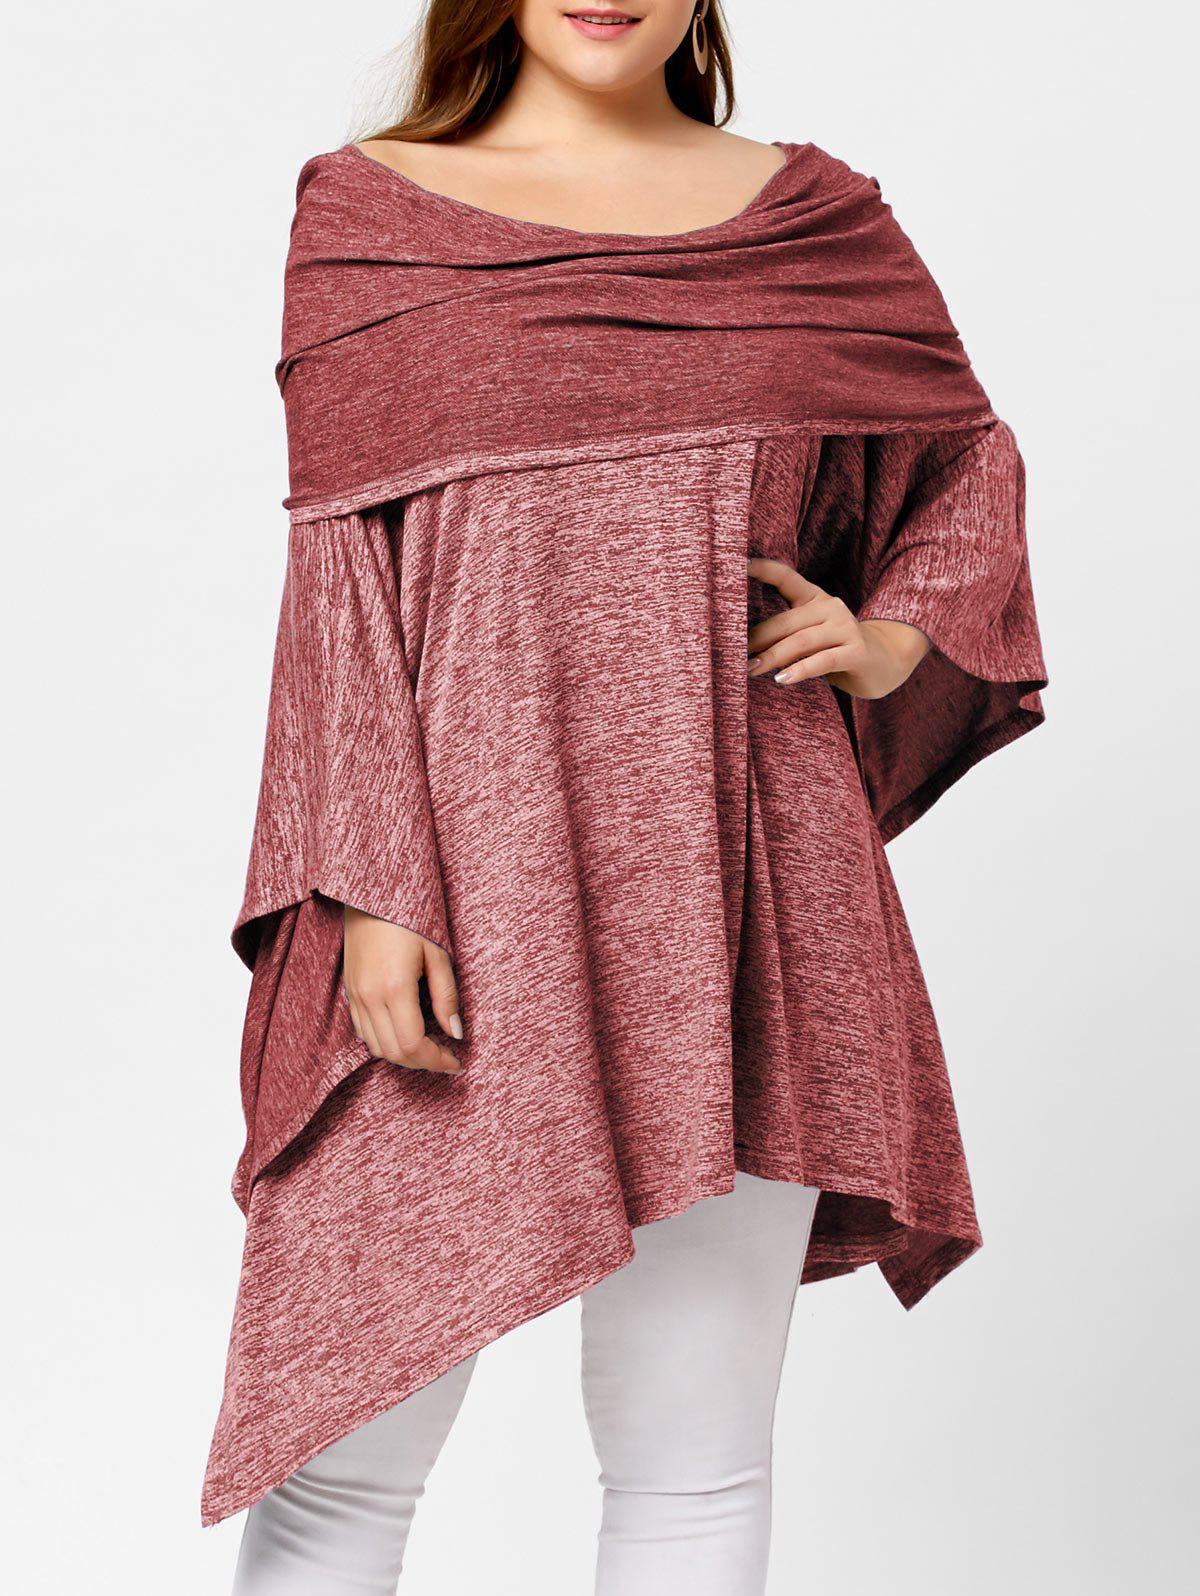 Off Shoulder Plus Size Asymmetric Tunic TopWOMEN<br><br>Size: ONE SIZE; Color: RED; Material: Cotton Blend,Spandex; Shirt Length: Long; Sleeve Length: Full; Style: Fashion; Pattern Style: Solid; Season: Fall,Spring; Weight: 0.6290kg; Package Contents: 1 x Top;